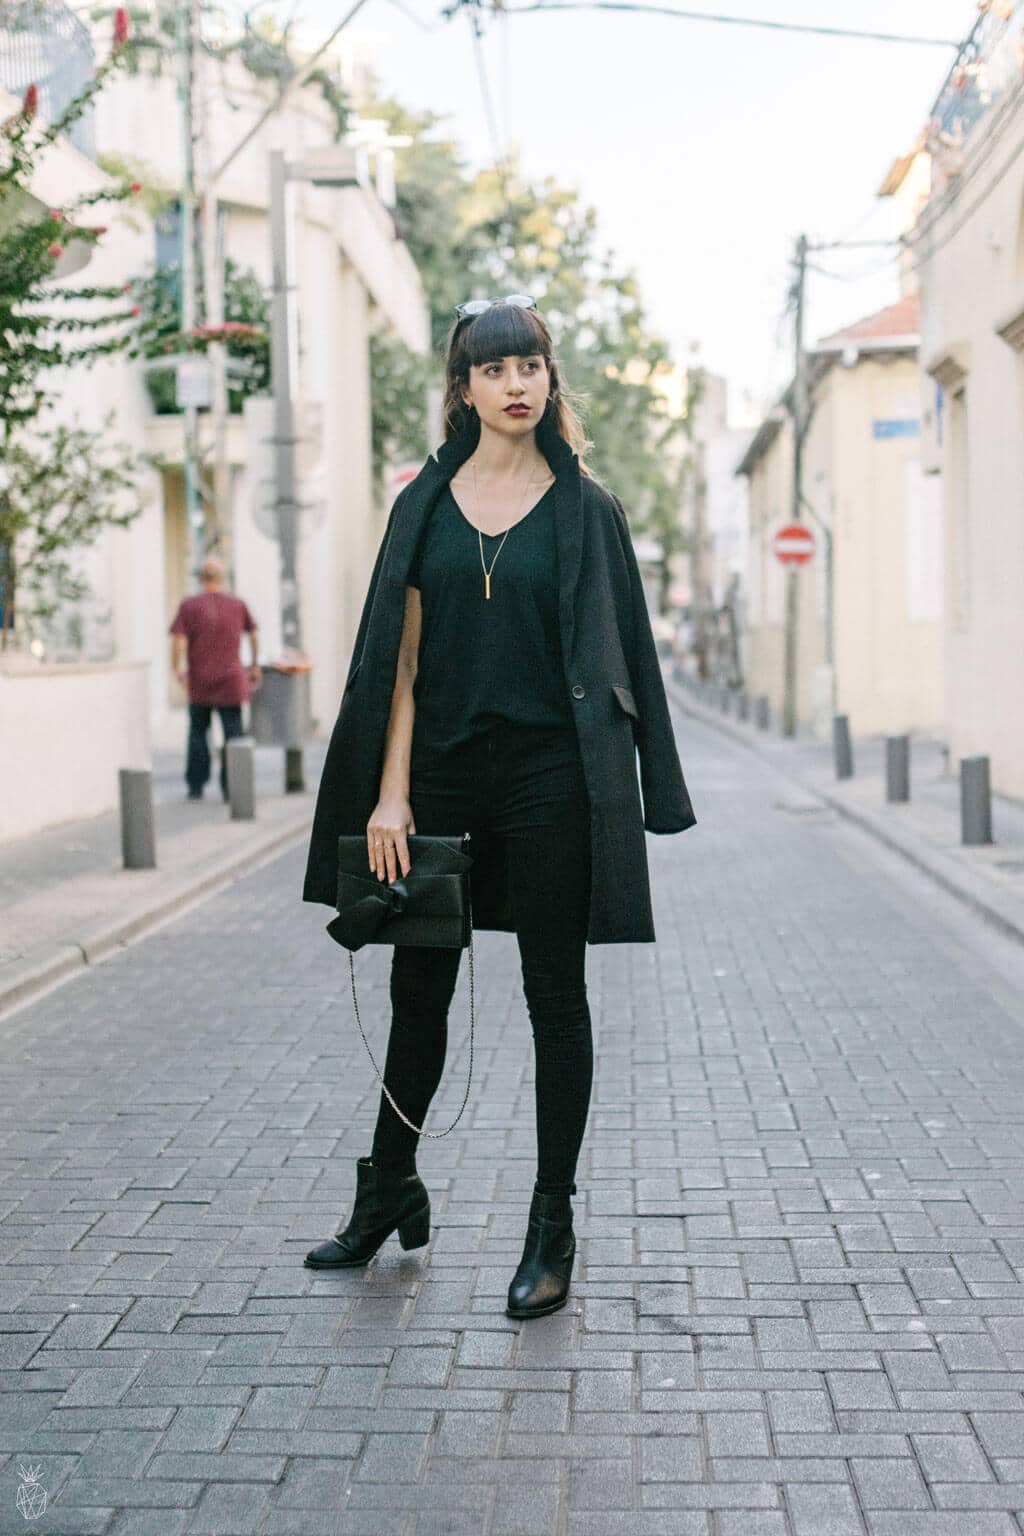 Outfit : Head-to-Toe Black - Outfit inspiration for winter | Fashion minimalist